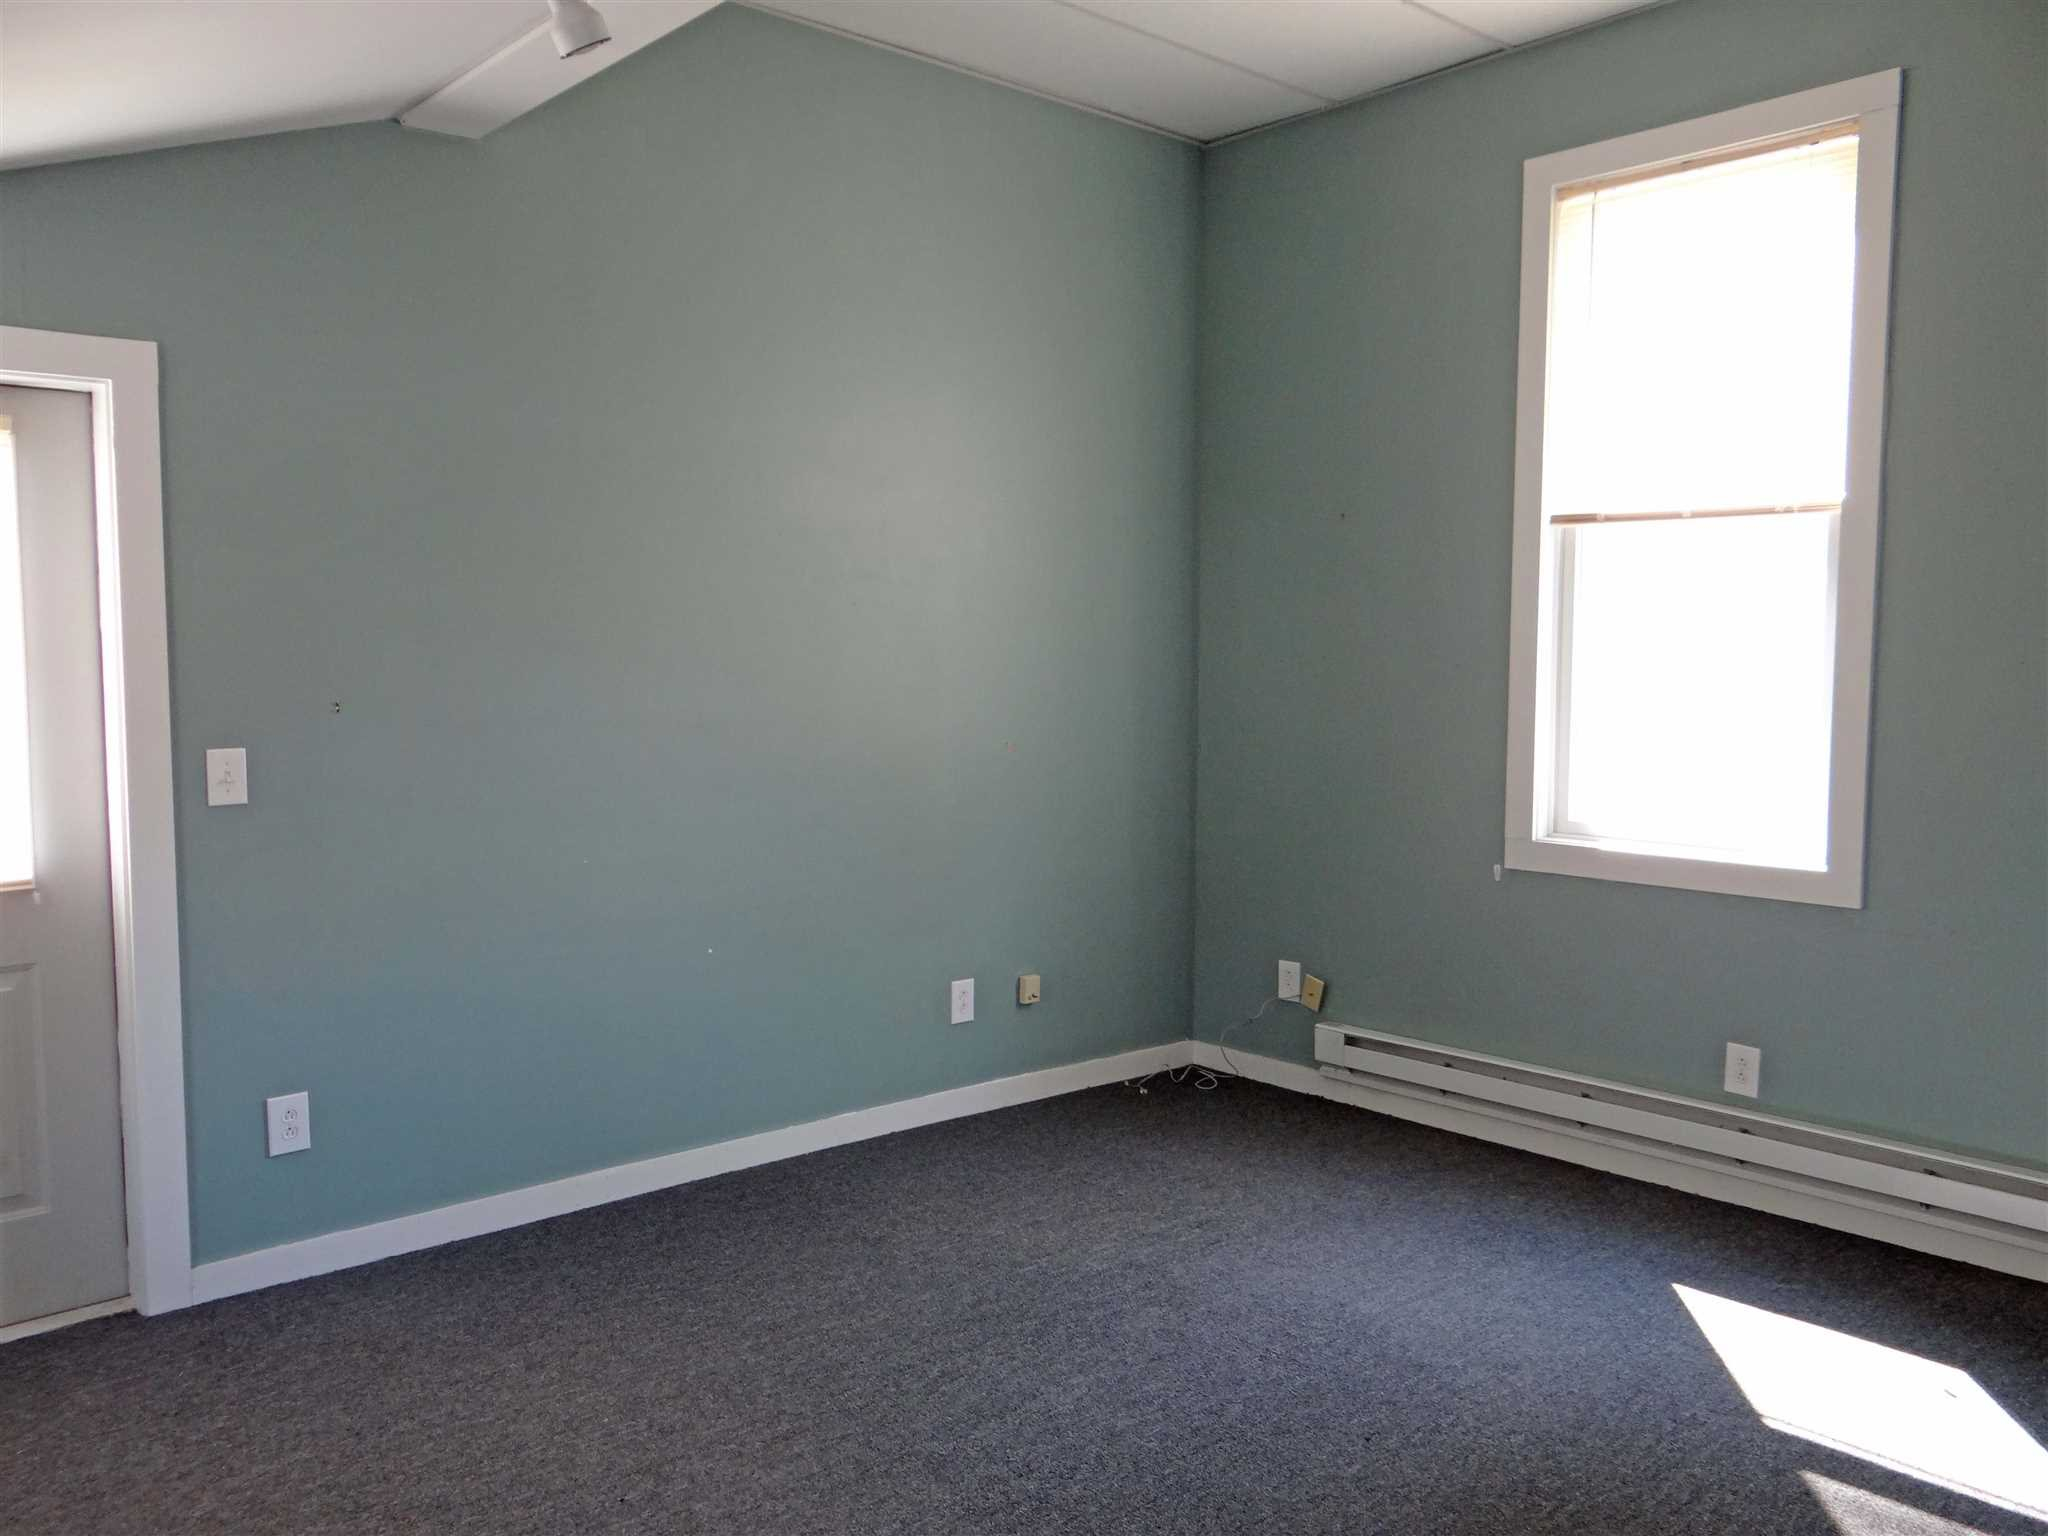 Additional photo for property listing at 149 CHURCH STREET 149 CHURCH STREET Millbrook, New York 12545 United States